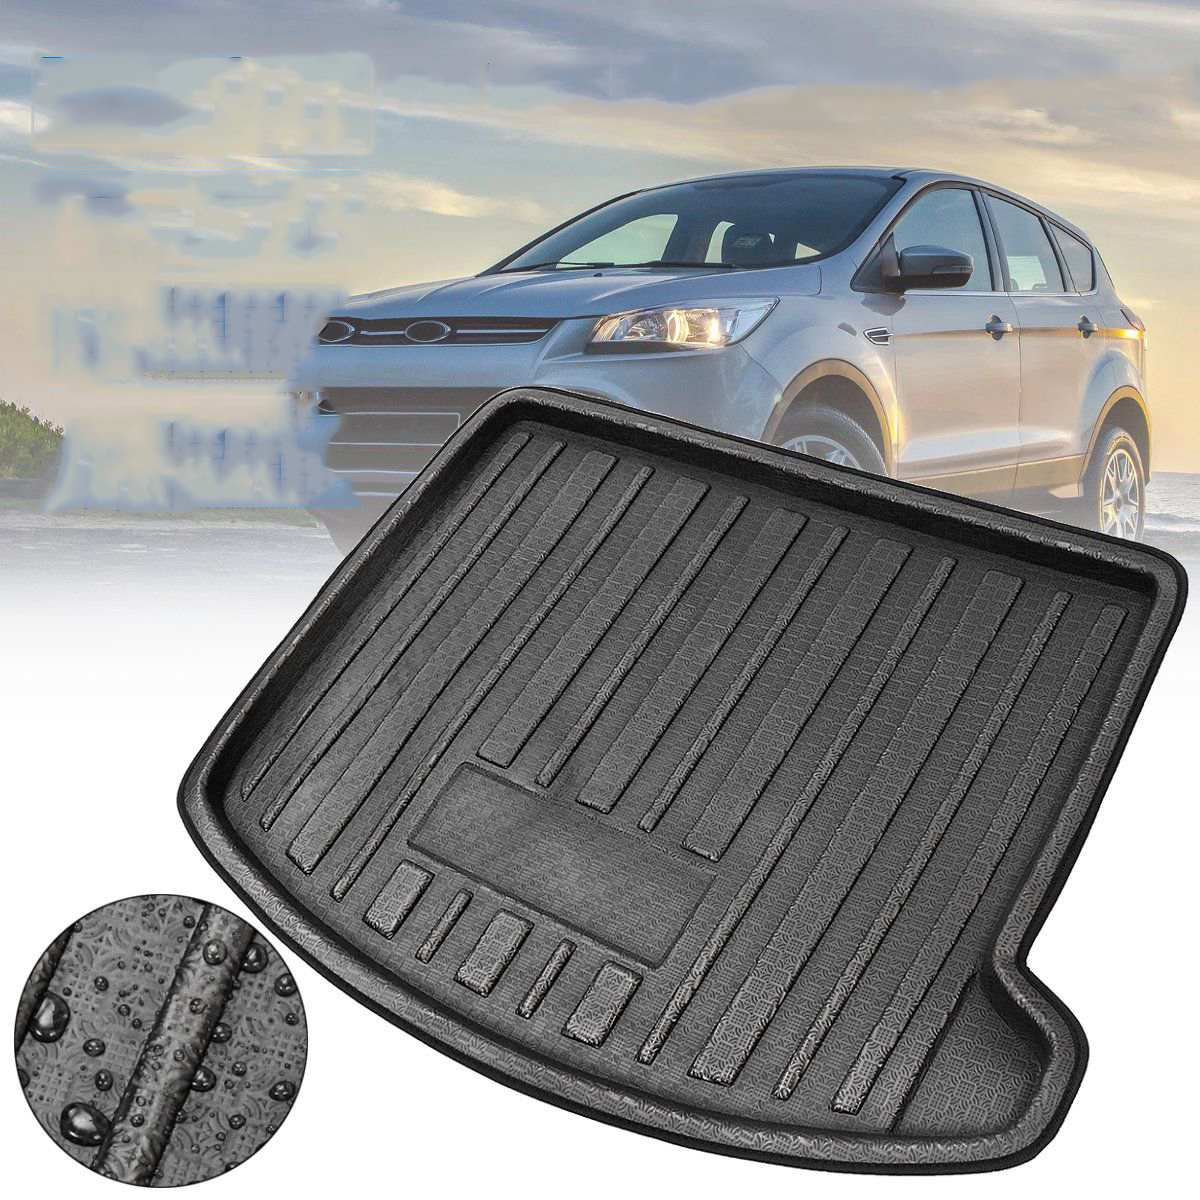 Boot Mat Rear Trunk Liner Cargo Floor Tray Carpet Mud Kick Protector Cover For Ford Escape Kuga 2013 2014 2015 2016 2017 18-2019